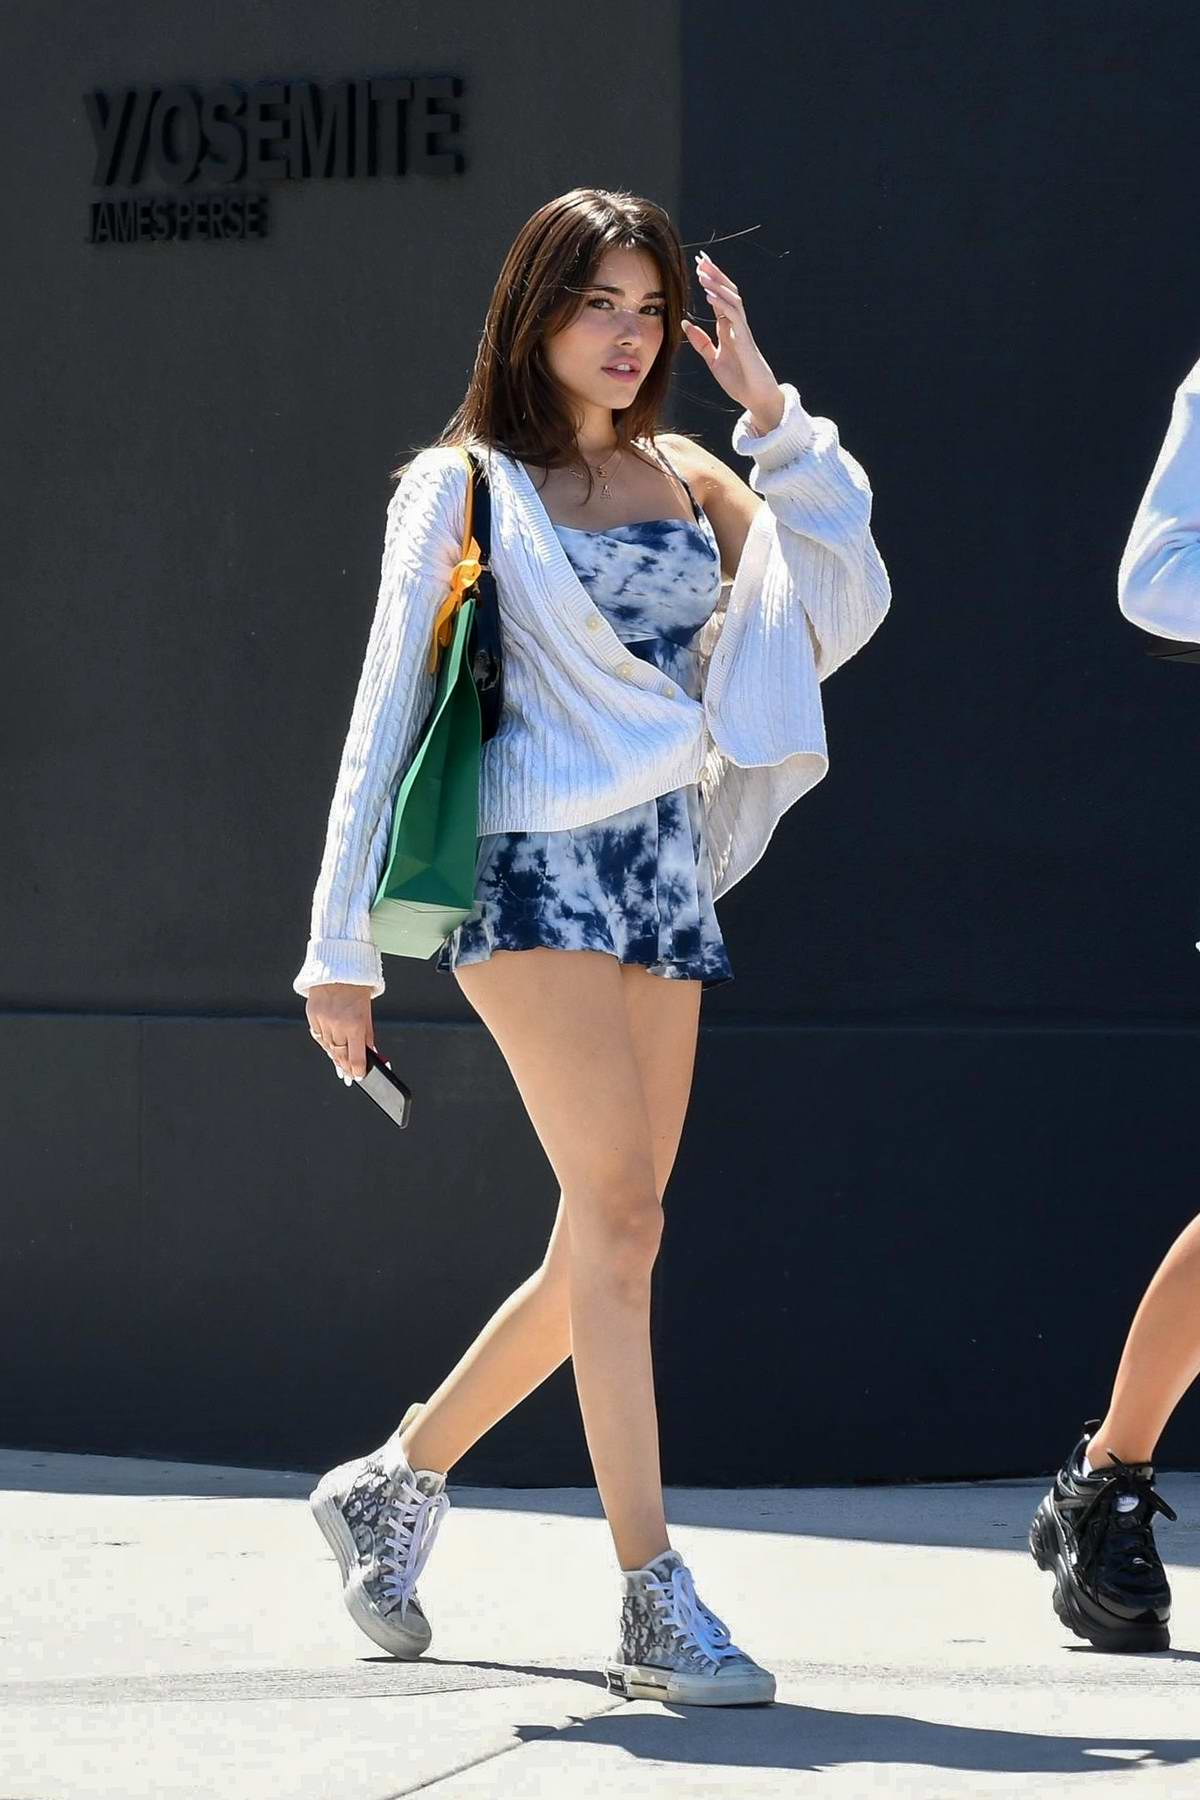 Madison Beer puts on a leggy display in a blue tie-dye mini dress while out with a friend in Los Angeles